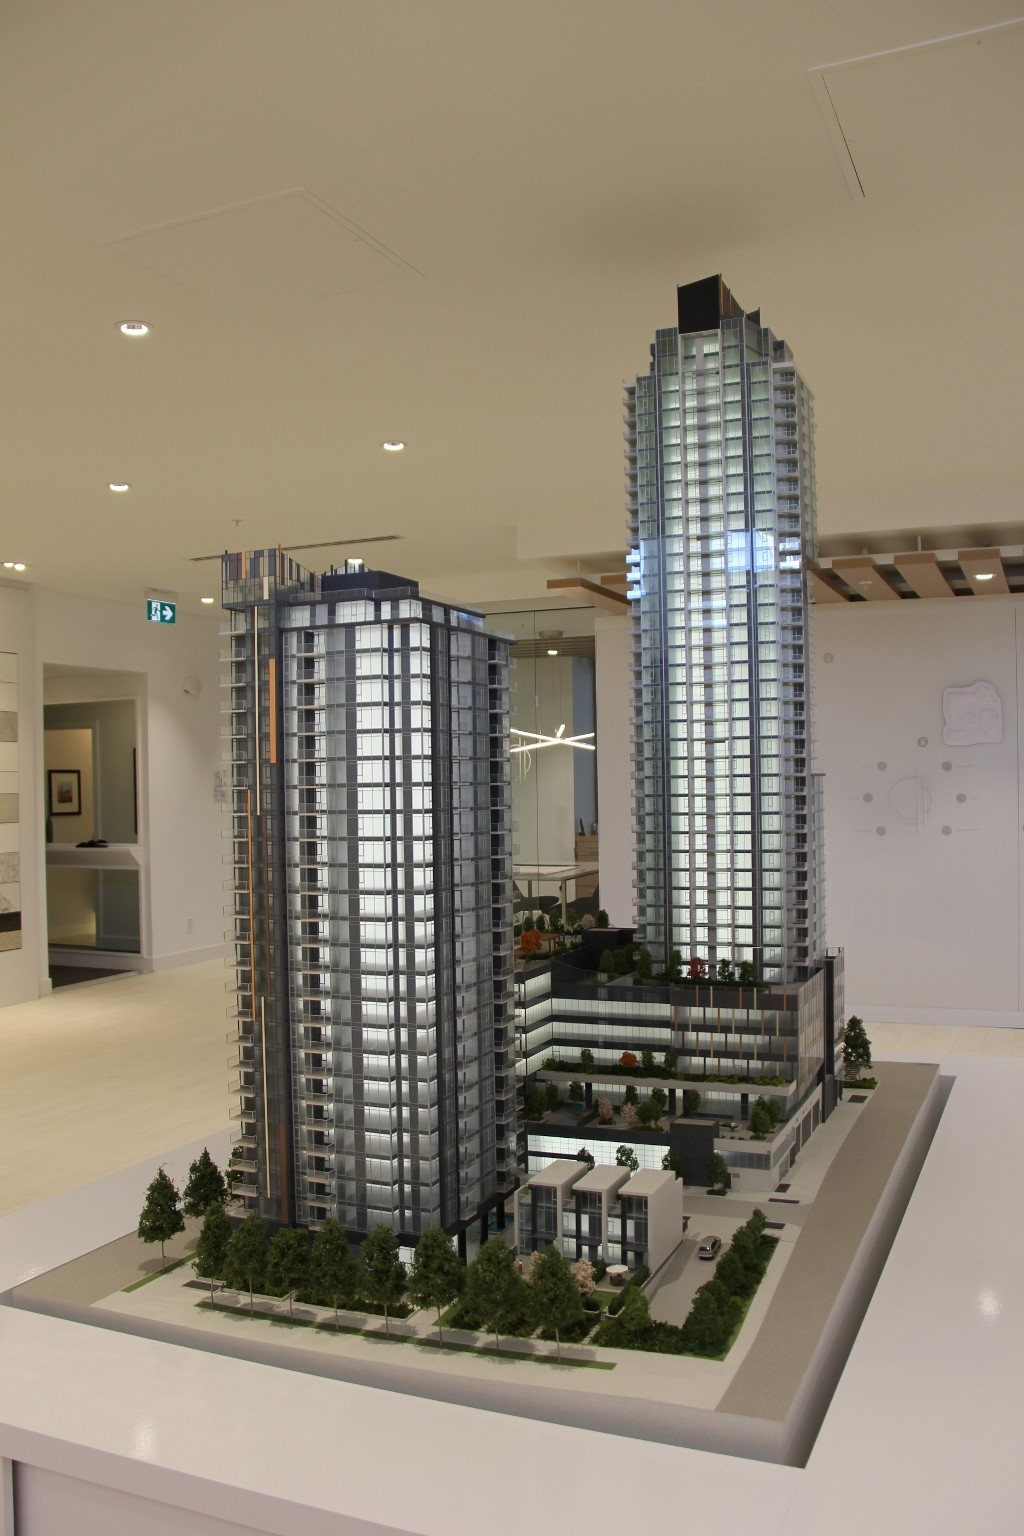 Photo 5: SUN TOWERS in Burnaby: Metrotown Condo for sale (Burnaby South)  : MLS® # PRESALE